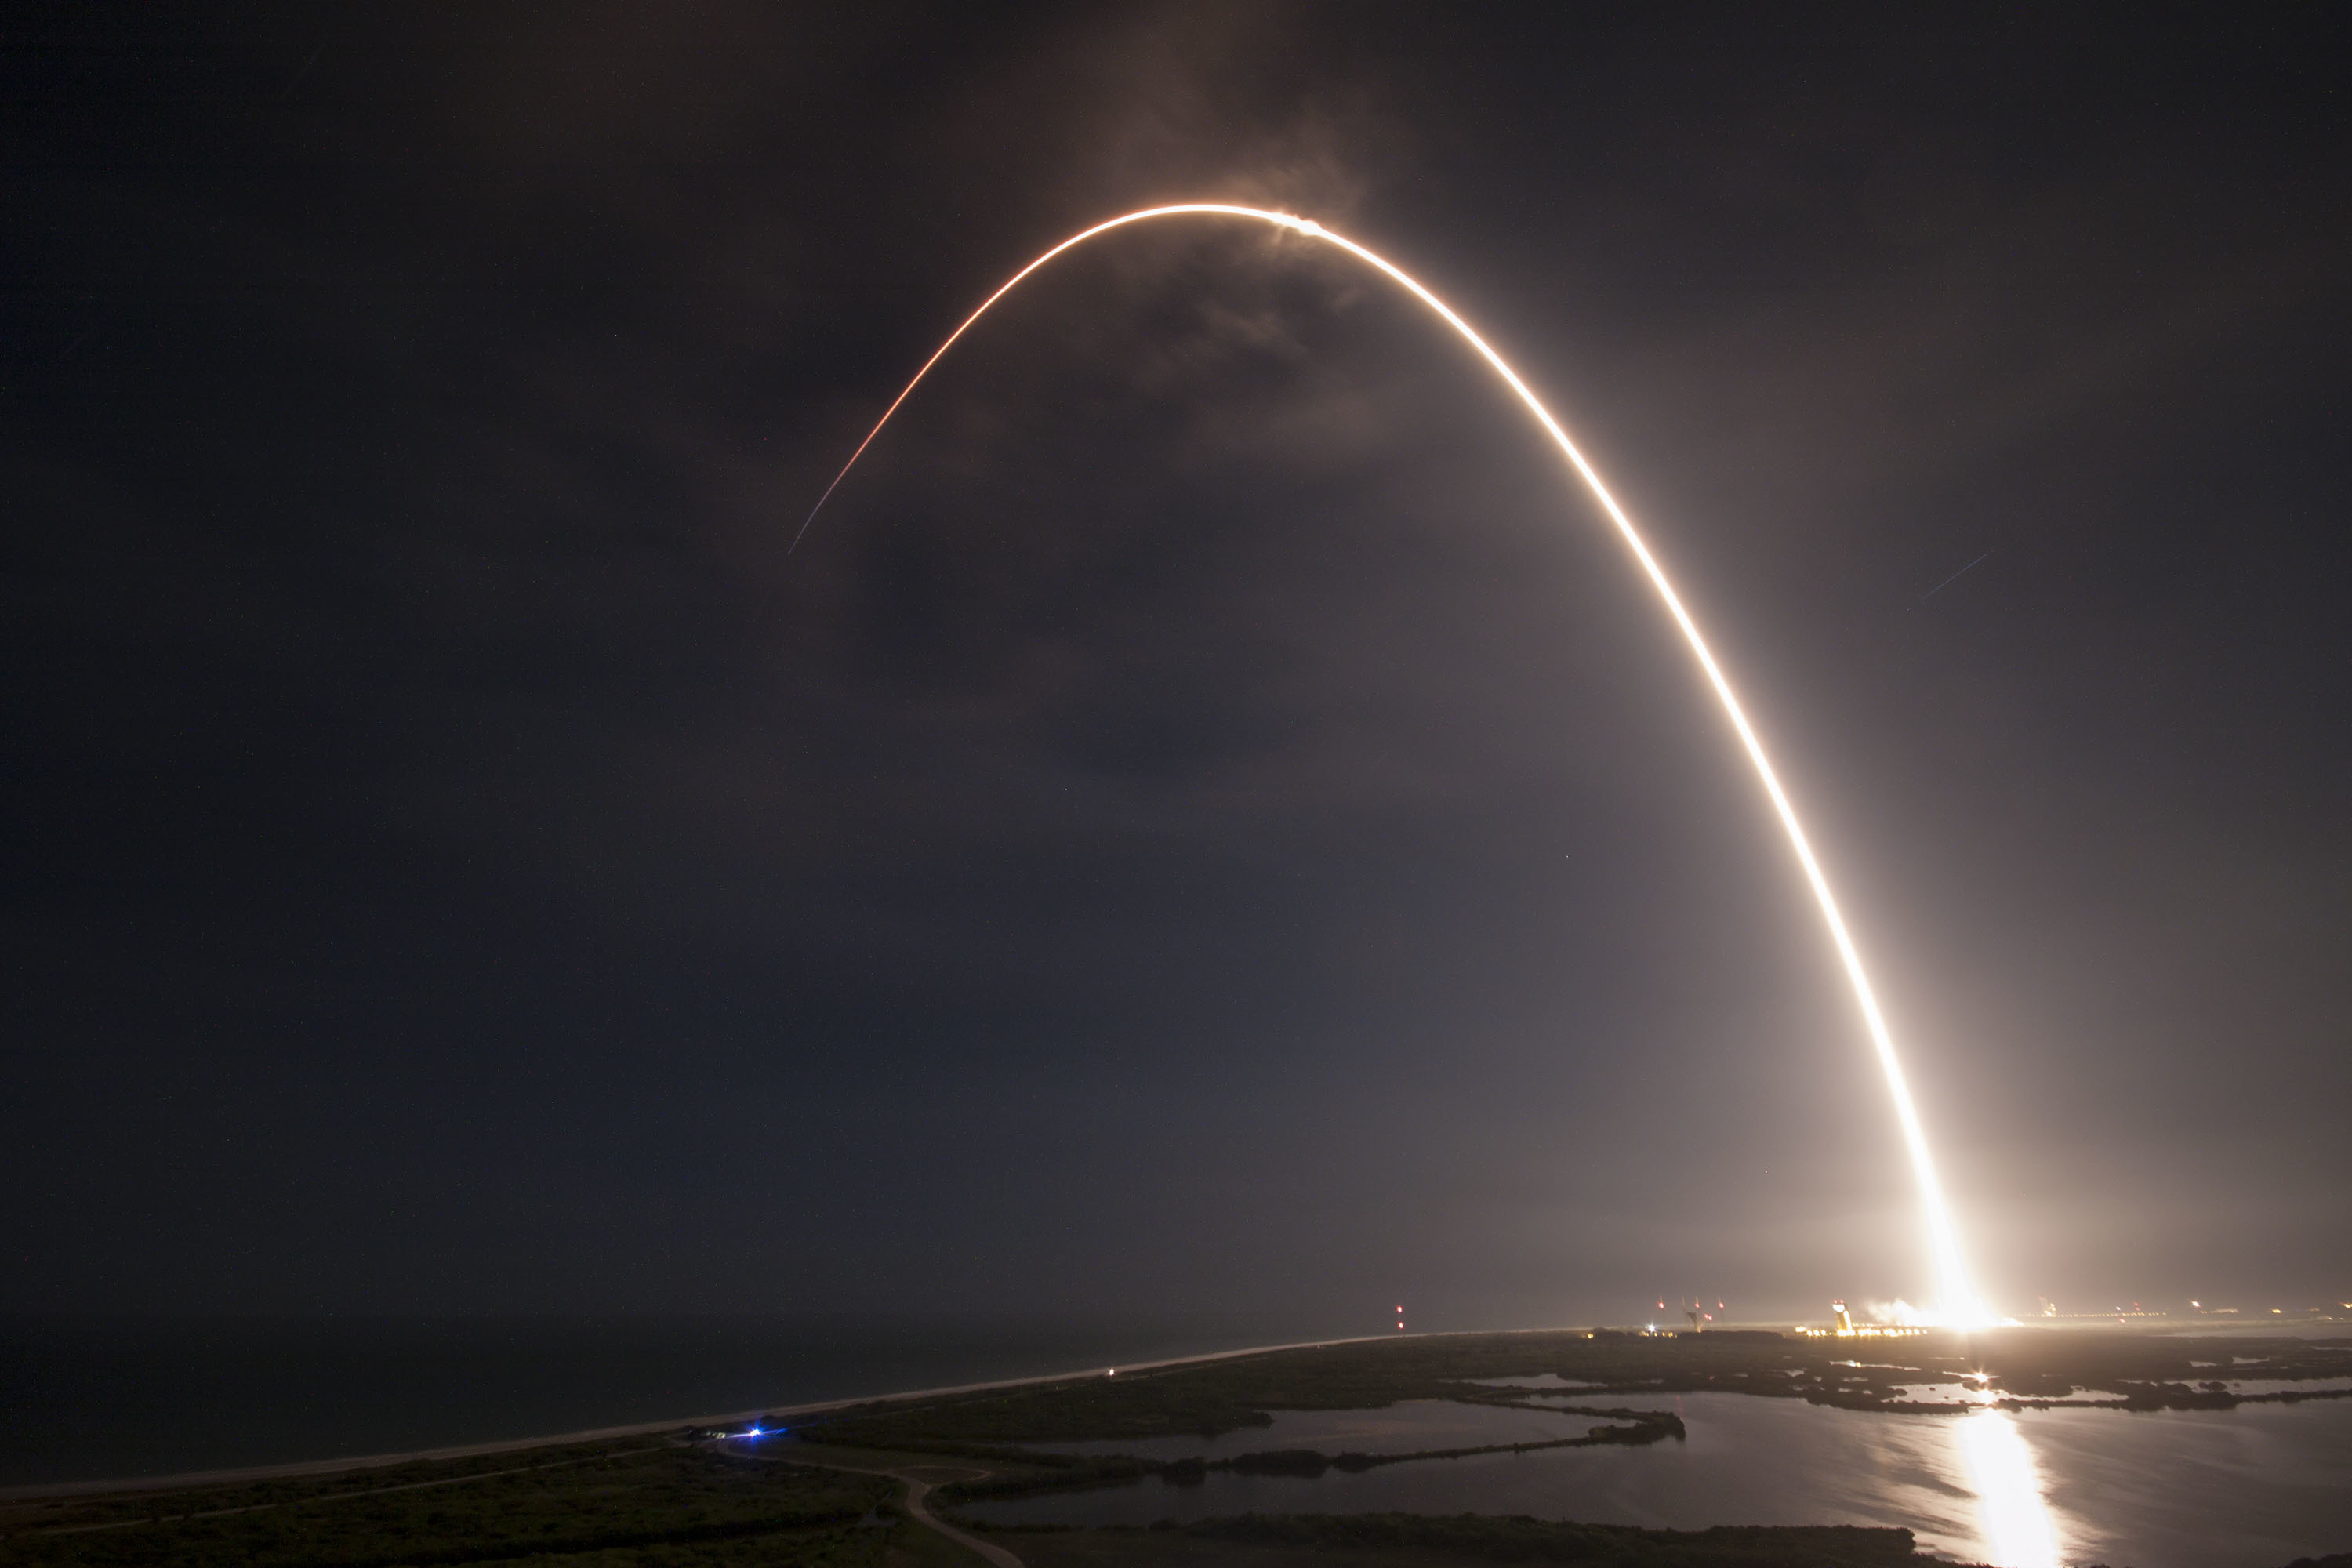 Falcon 9 Launch Trajectory